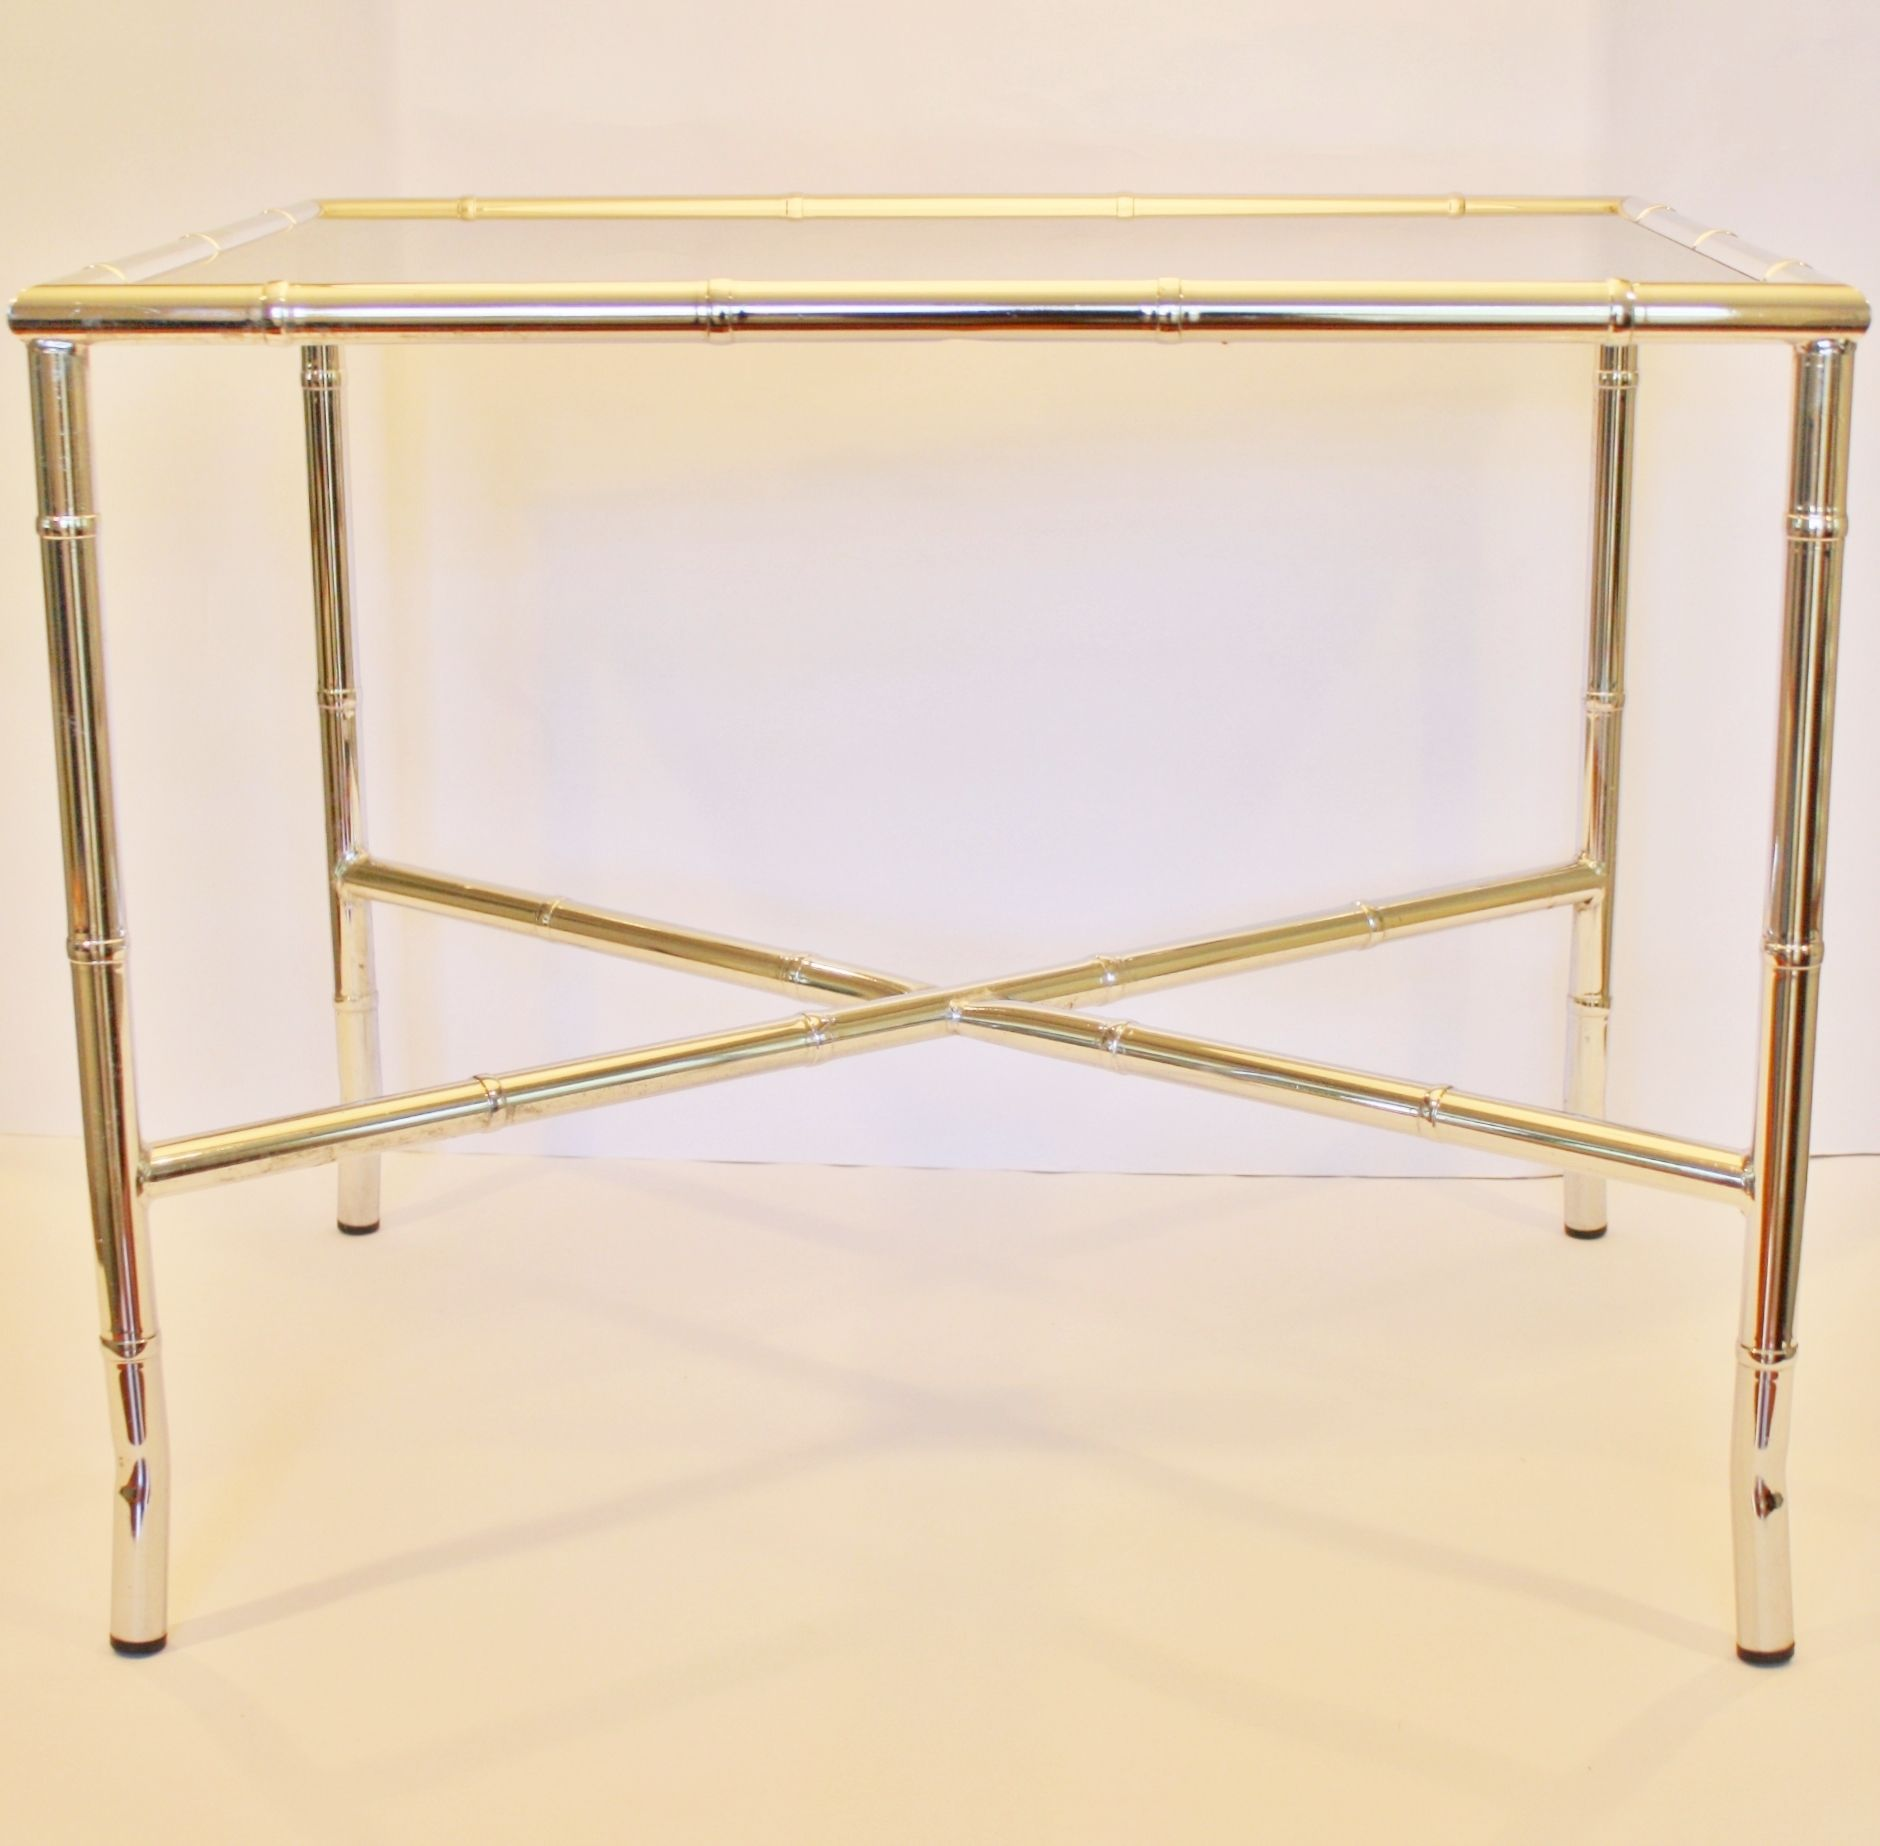 Chrome Faux Bamboo End Table With Smoked Glass Top   Image 3 Of 5